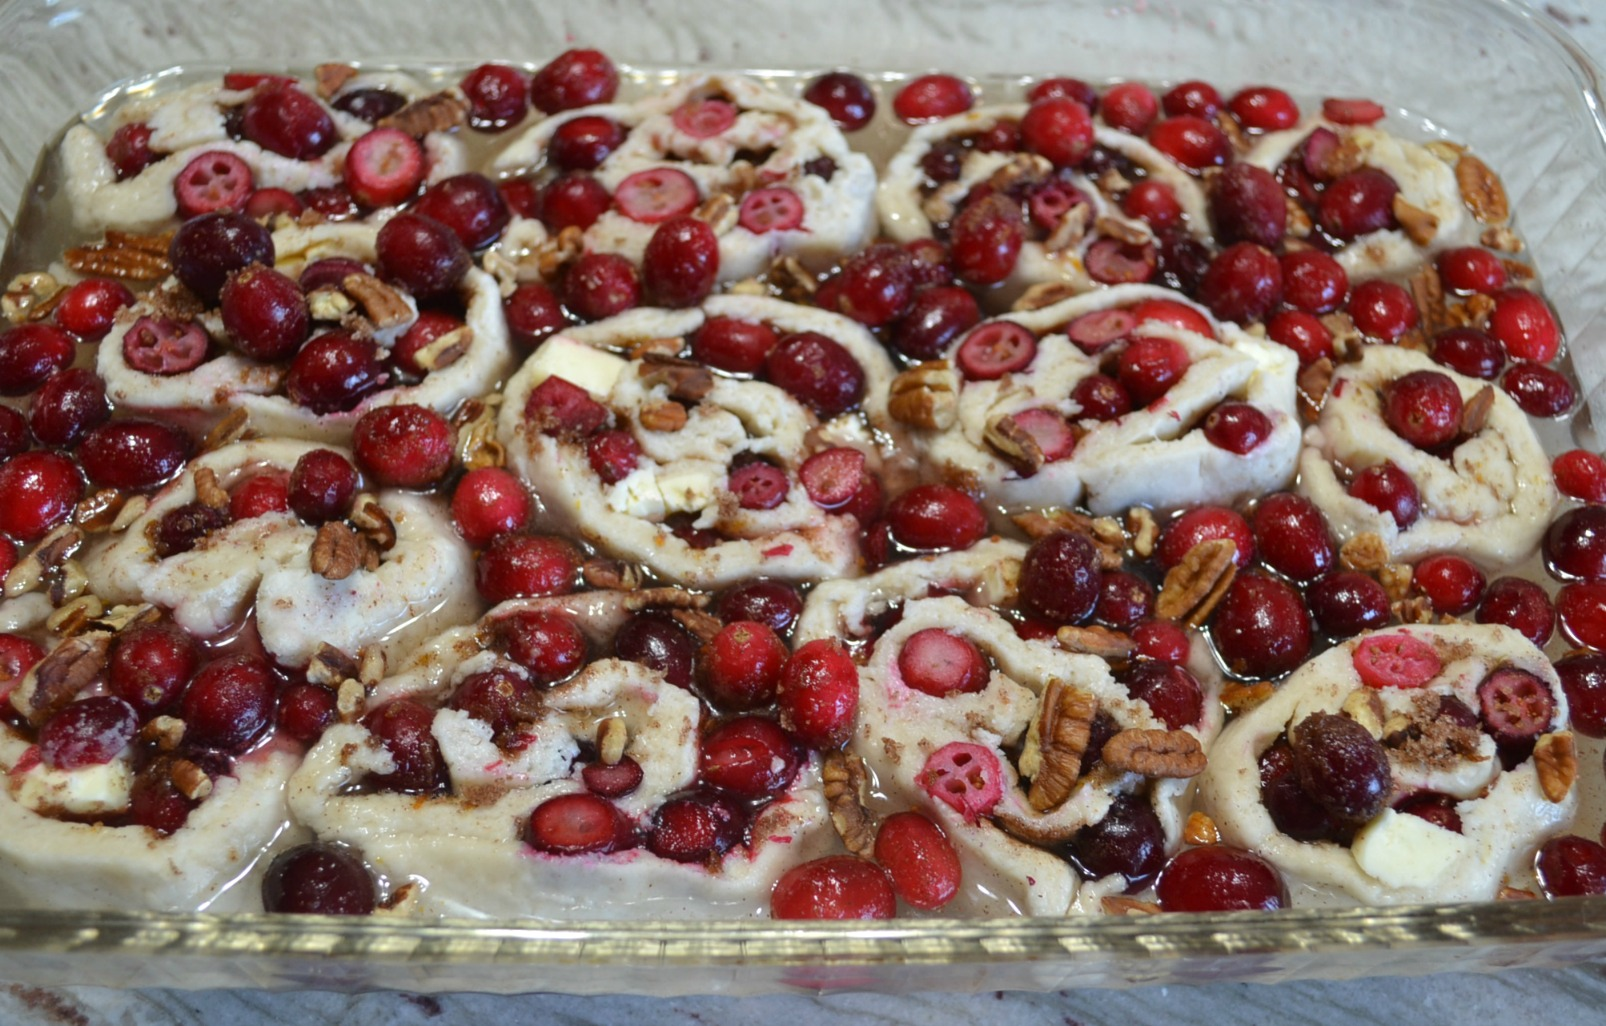 frozen cranberries, cape cod select, cobbler roll, dessert, holiday baking